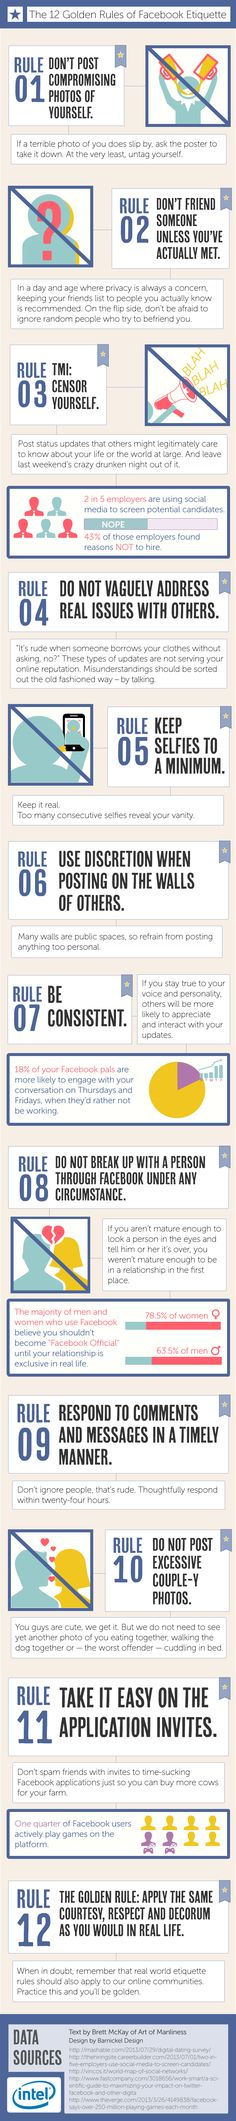 The 12 Rules Of Facebook Etiquette http://www.lifehack.org/articles/communication/the-12-rules-facebook-etiquette.html